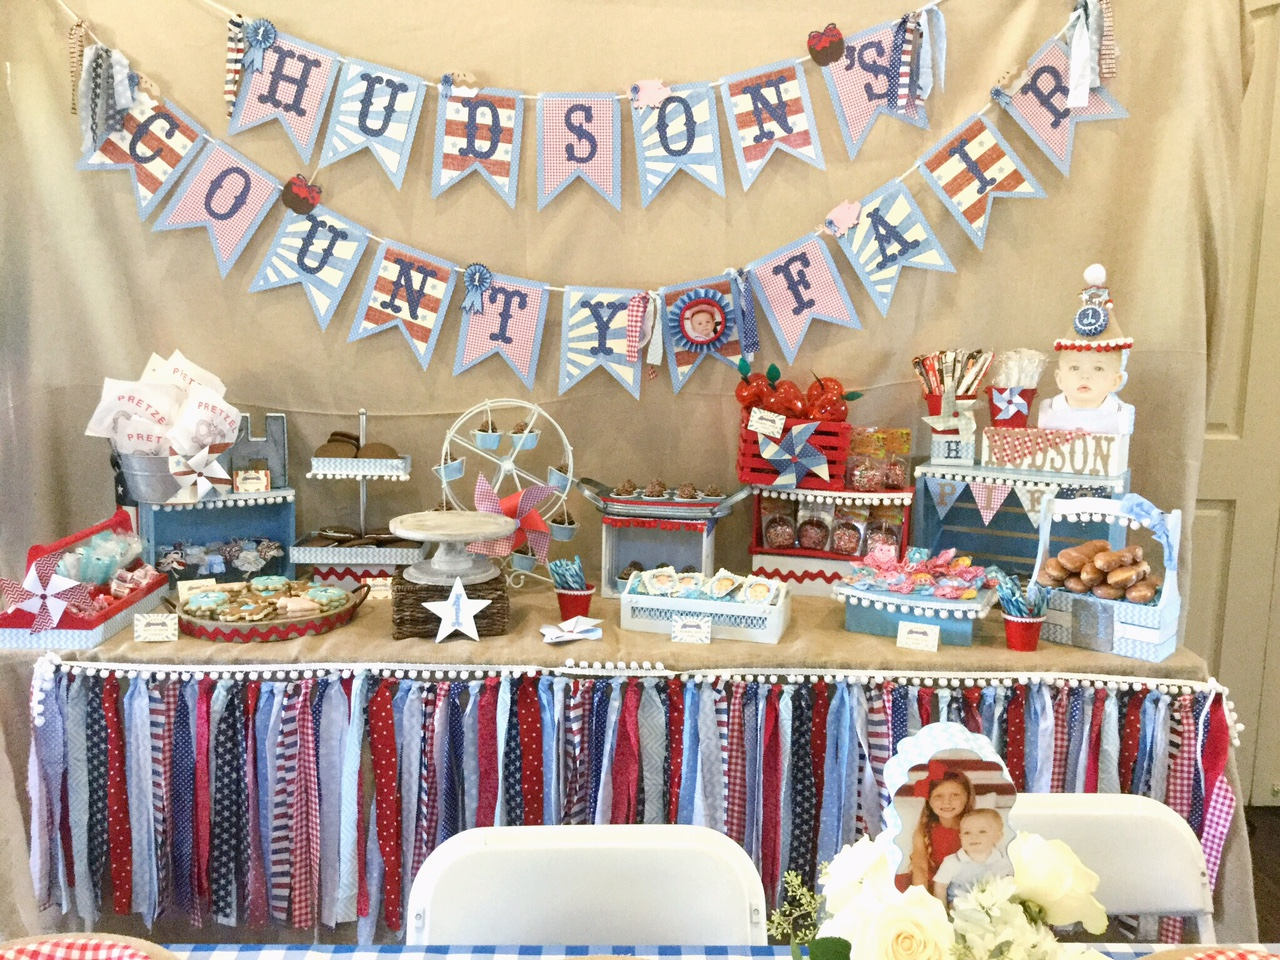 This dessert table was the focal point of the room and it was so cute! I had everything on there I could think of that that was fair-related-- mini apple pies, whoppee pies, donuts, soft-pretzels, sugar-cookies, cupcakes, candy, caramel apples, and the yummy cake!